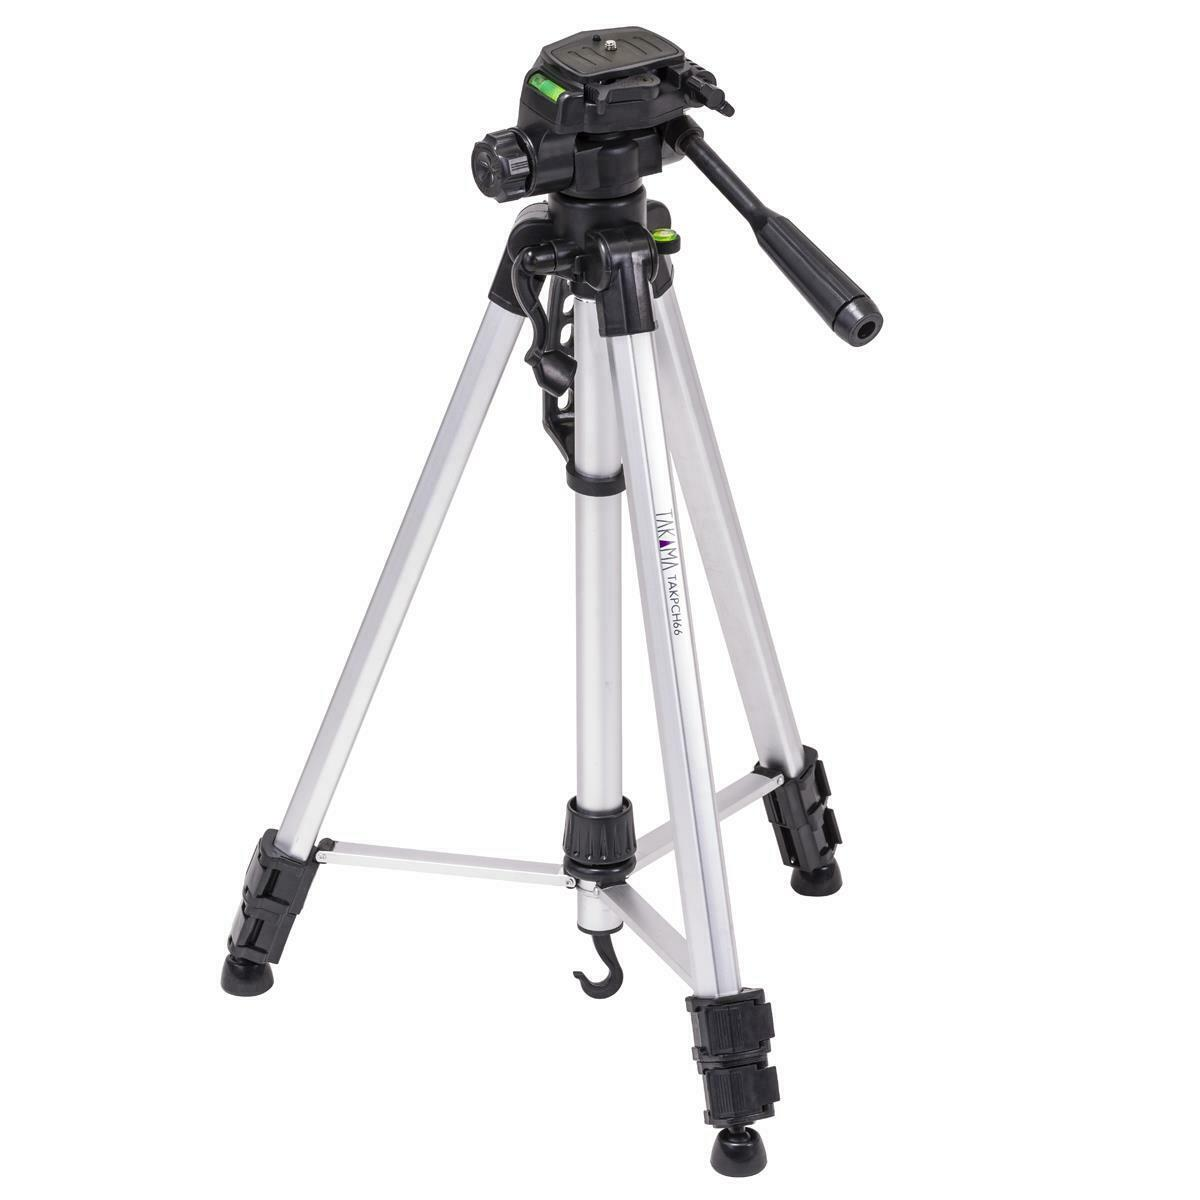 Takama 66 3 Section Tripod With Way Head Tak P3h66 2619 Weifeng Portable Stand 4 Aluminium Legs Brace 1 Of 11 See More